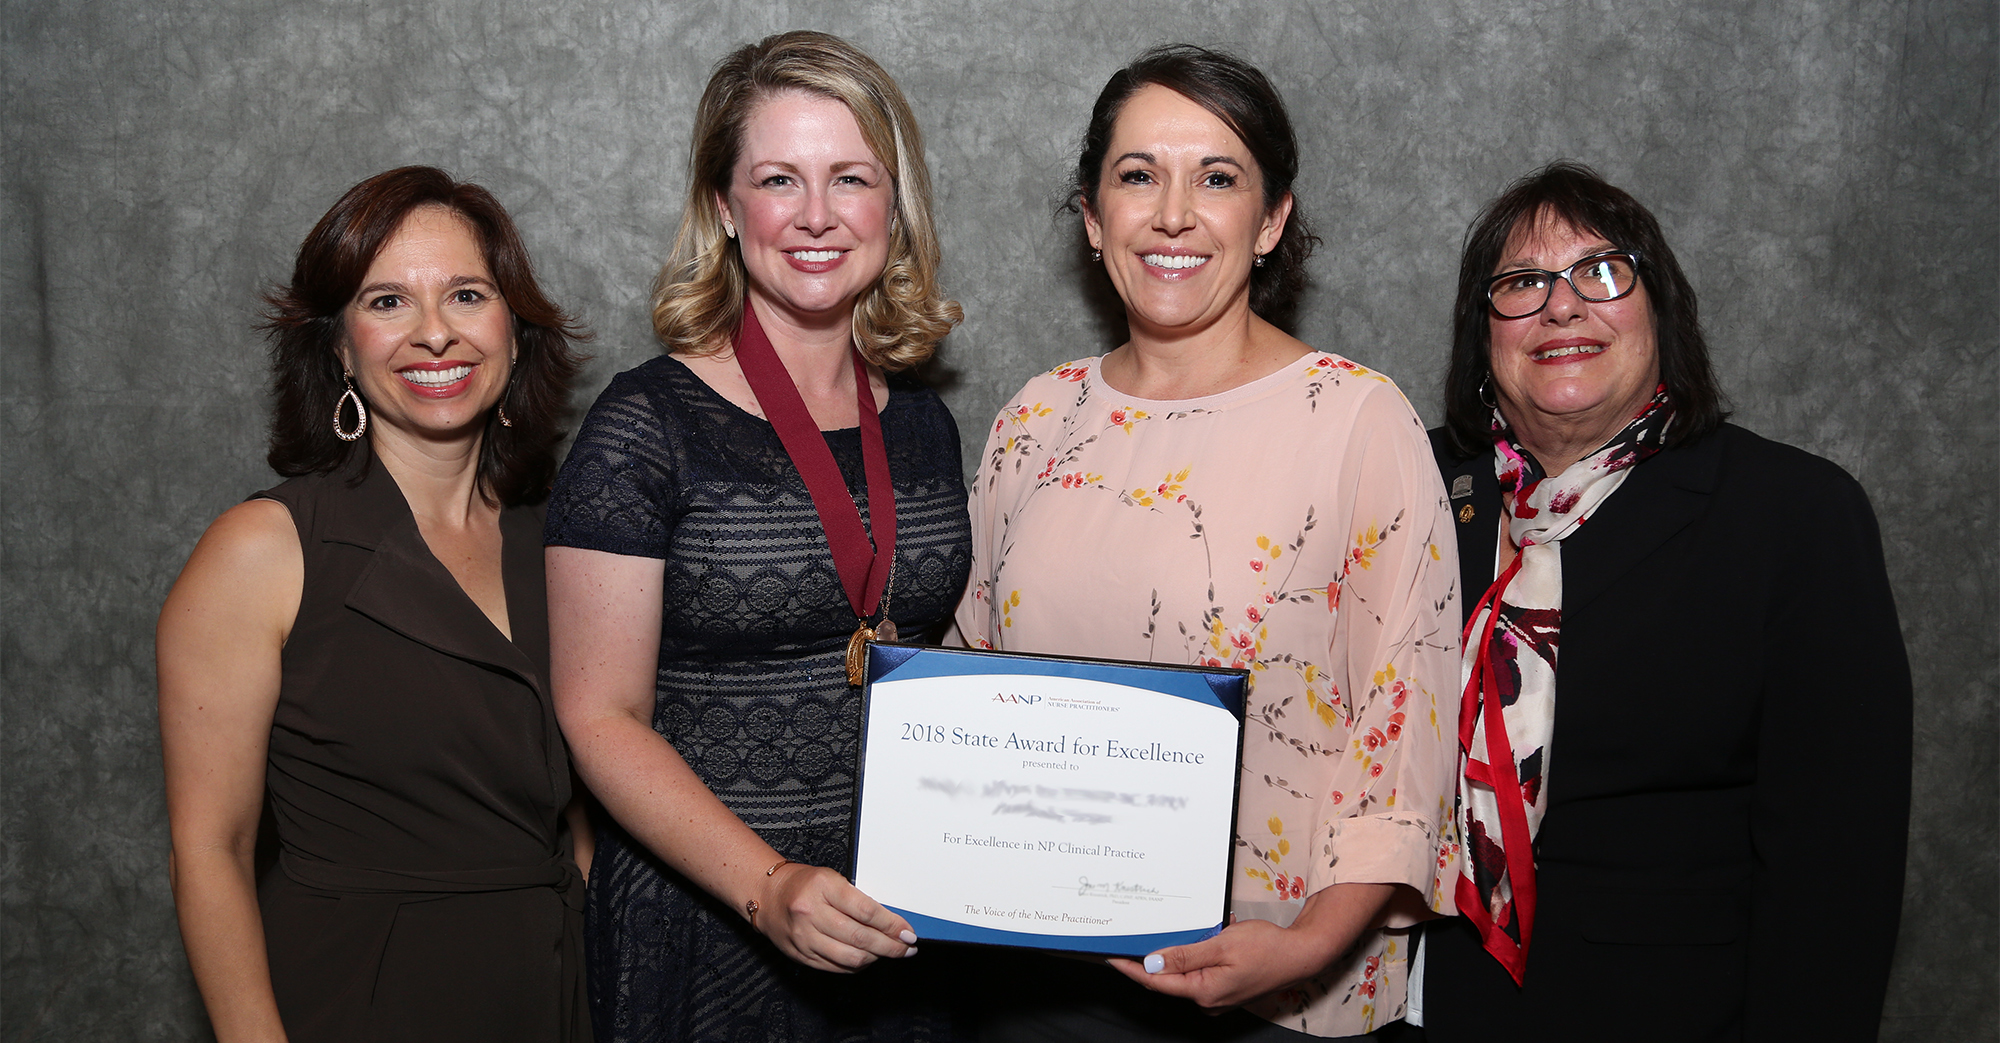 American Association of Nurse Practitioners - Recognition and Award Opportunities